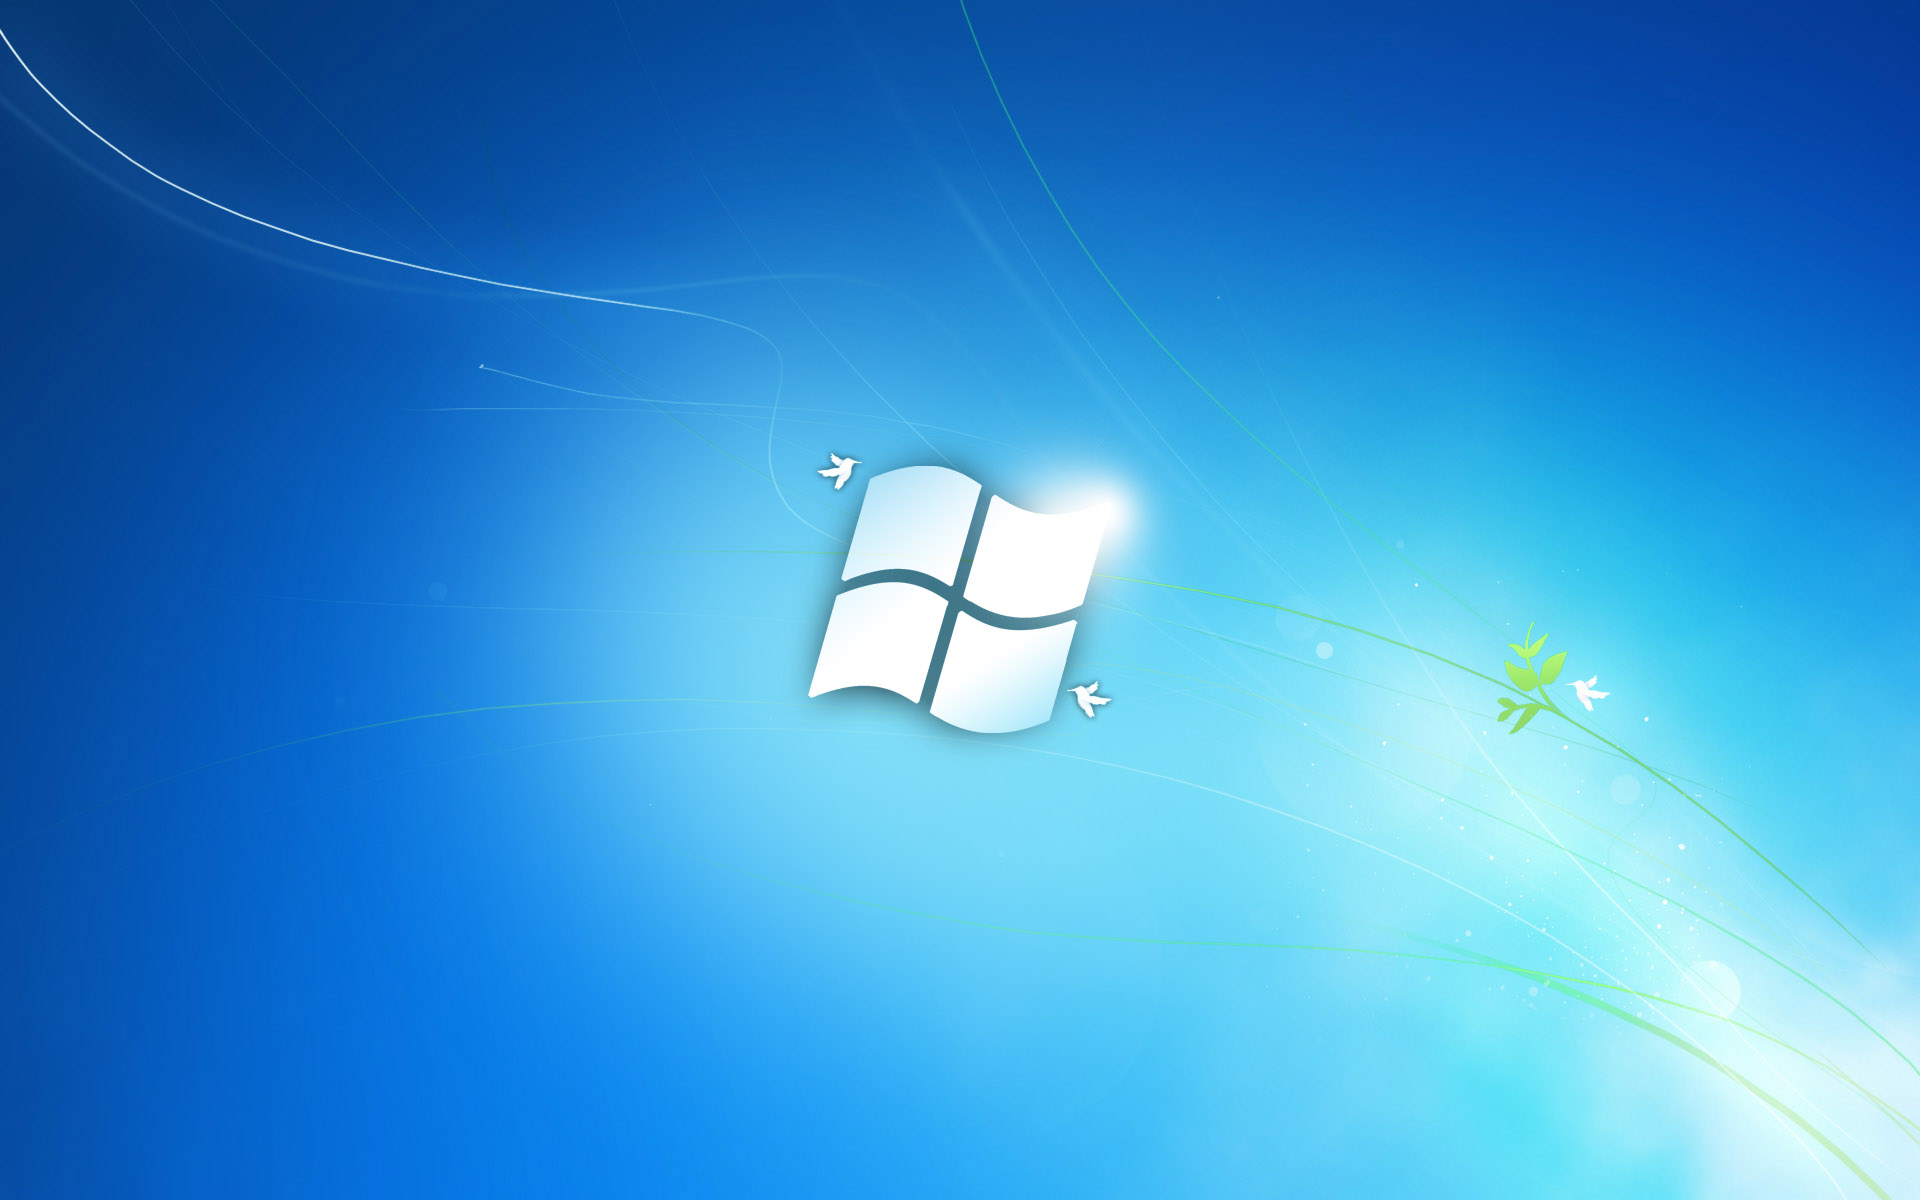 Windows Desktop Wallpaper 9296